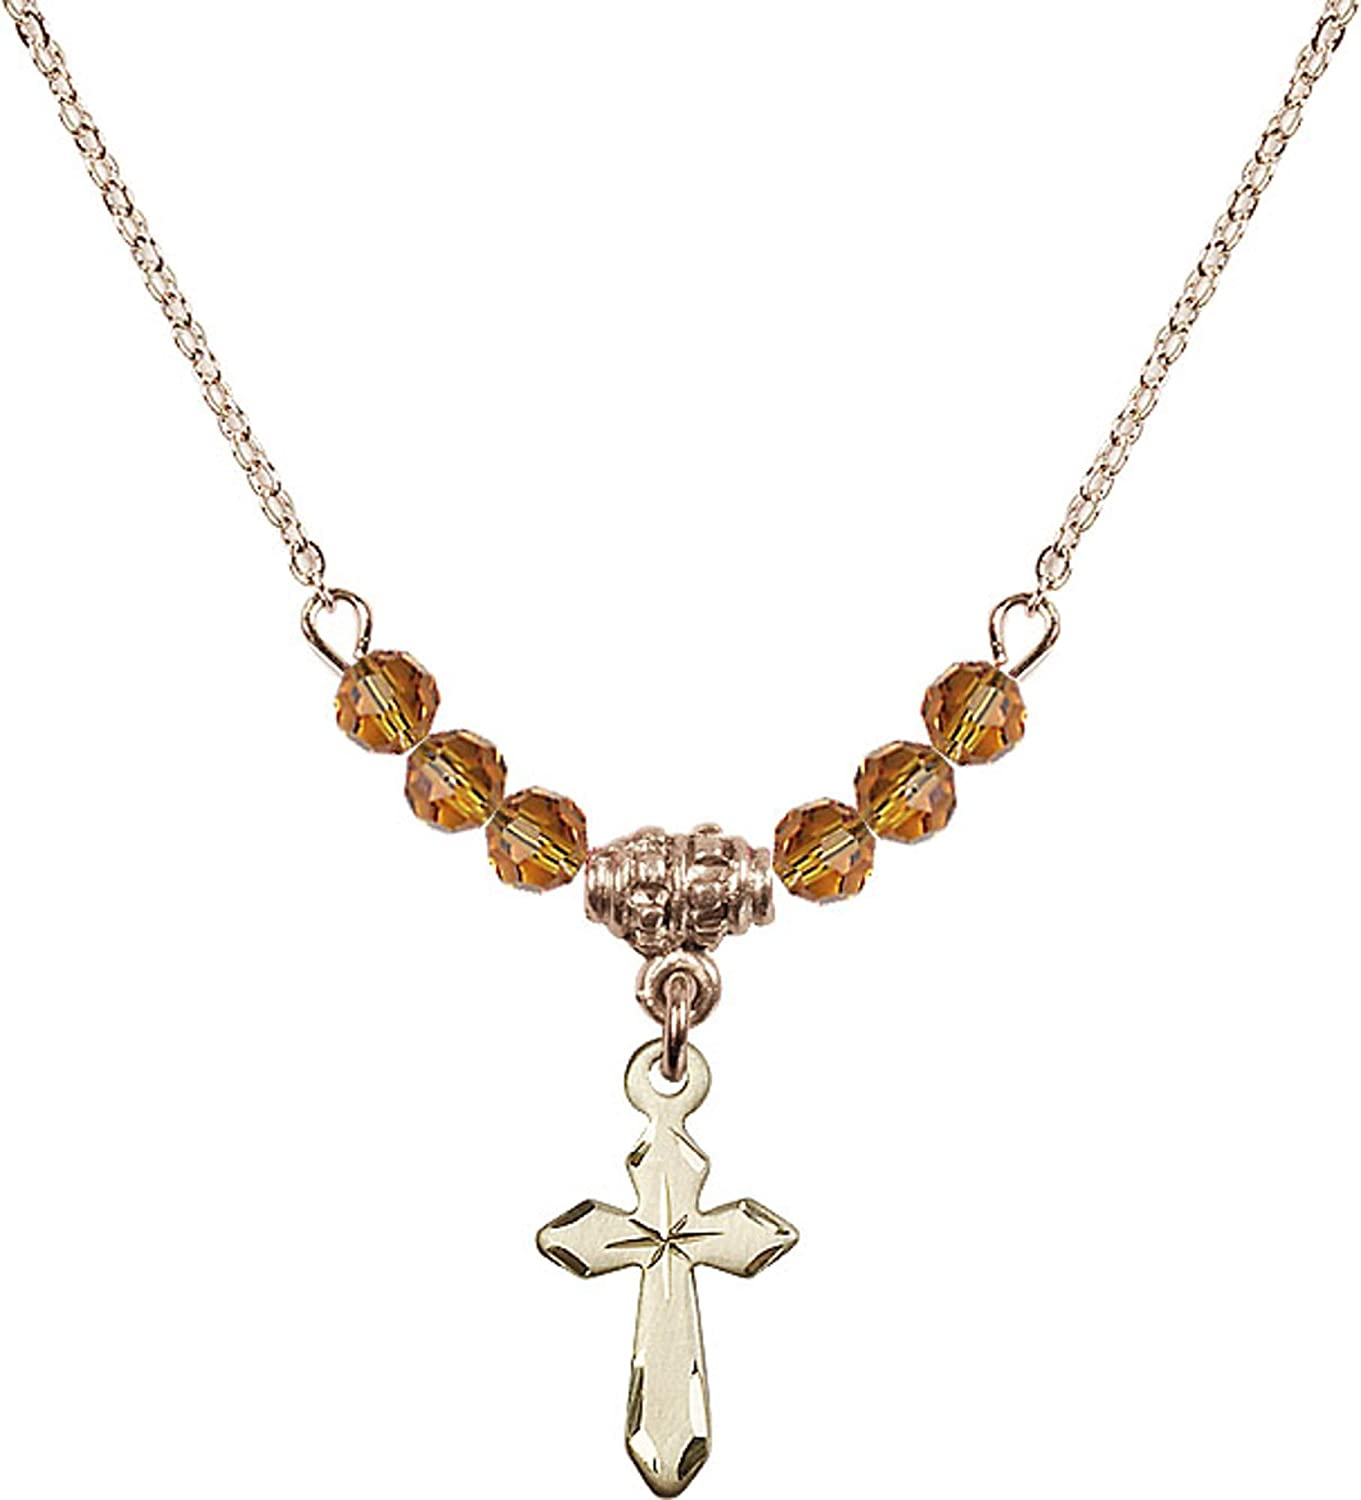 Bonyak Jewelry 18 Inch Hamilton Gold Plated Necklace w// 4mm Yellow November Birth Month Stone Beads and Cross Charm